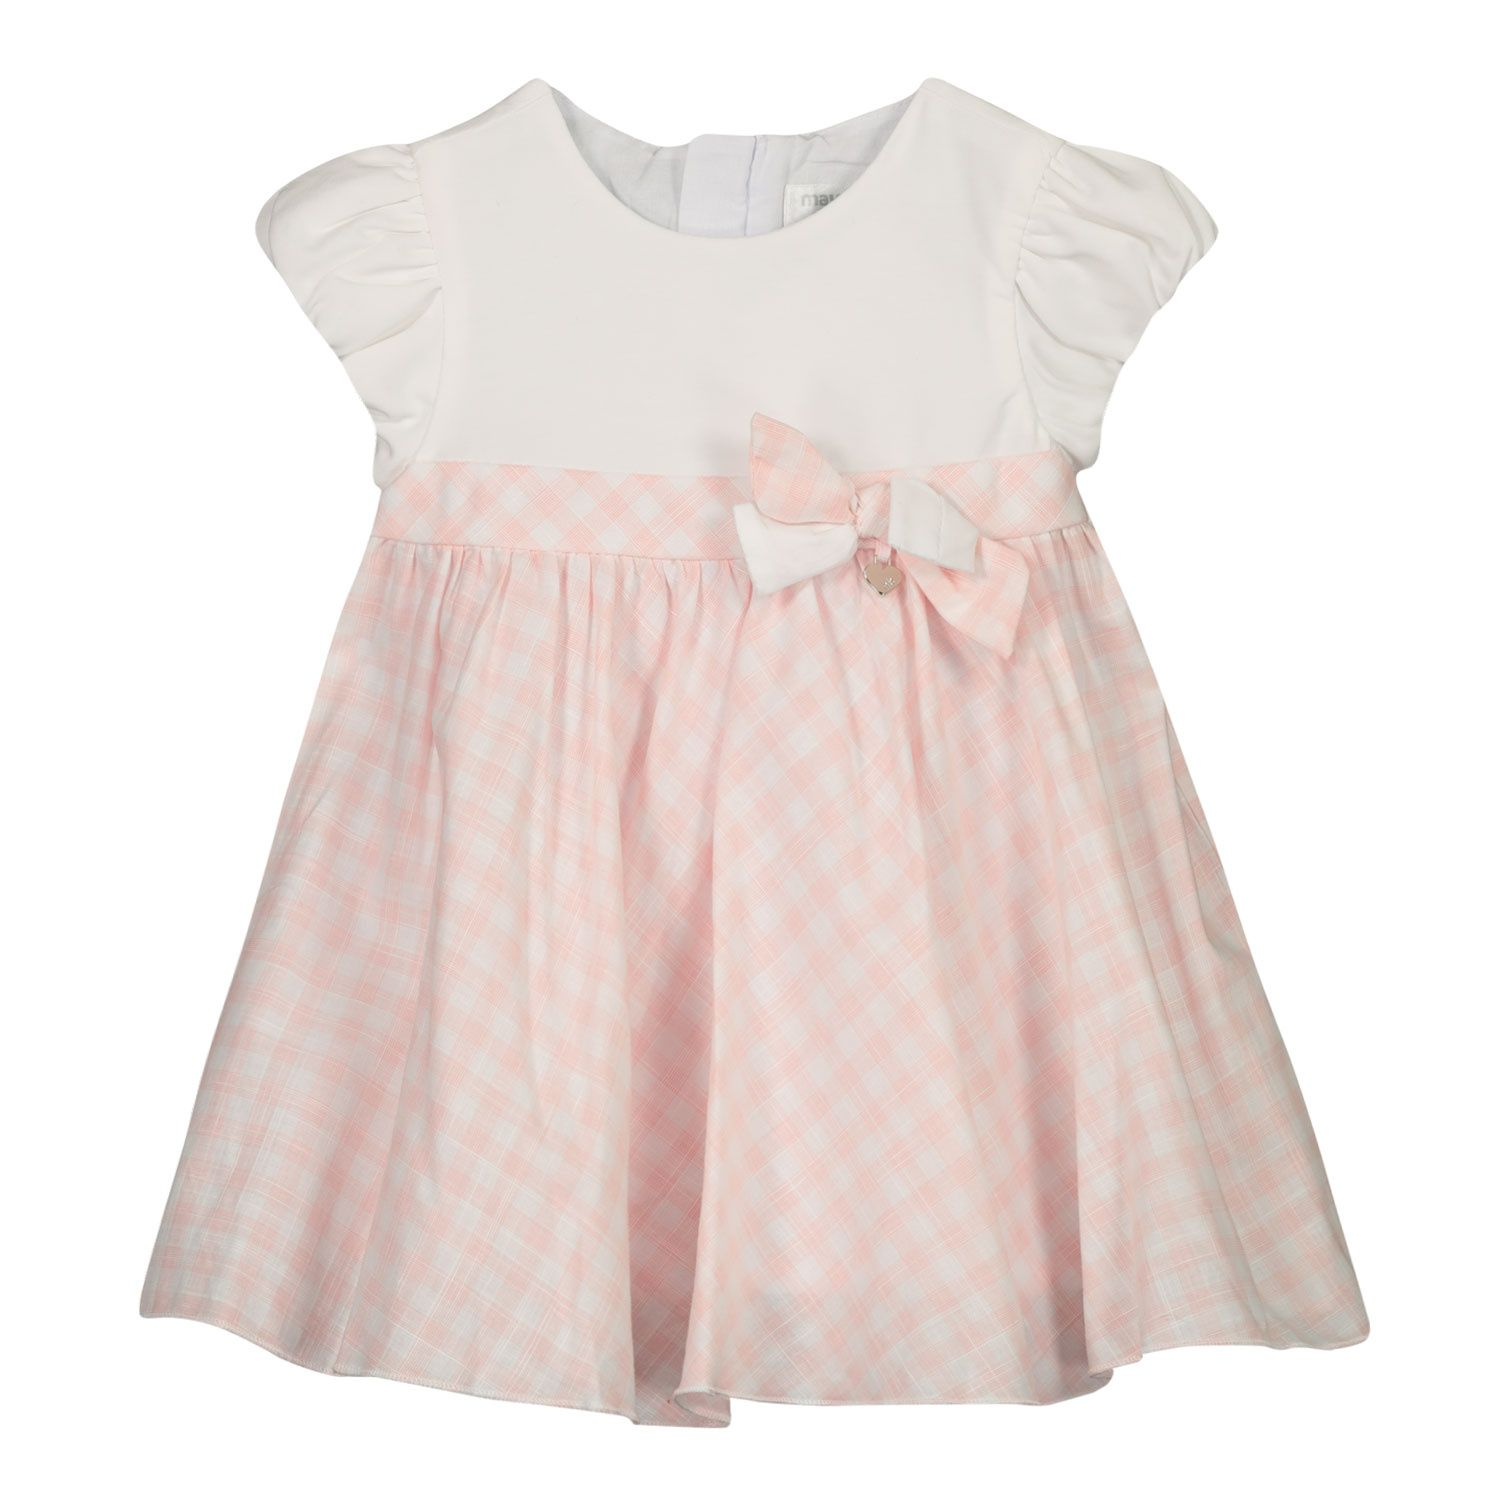 Picture of Mayoral 1803 baby dress light pink